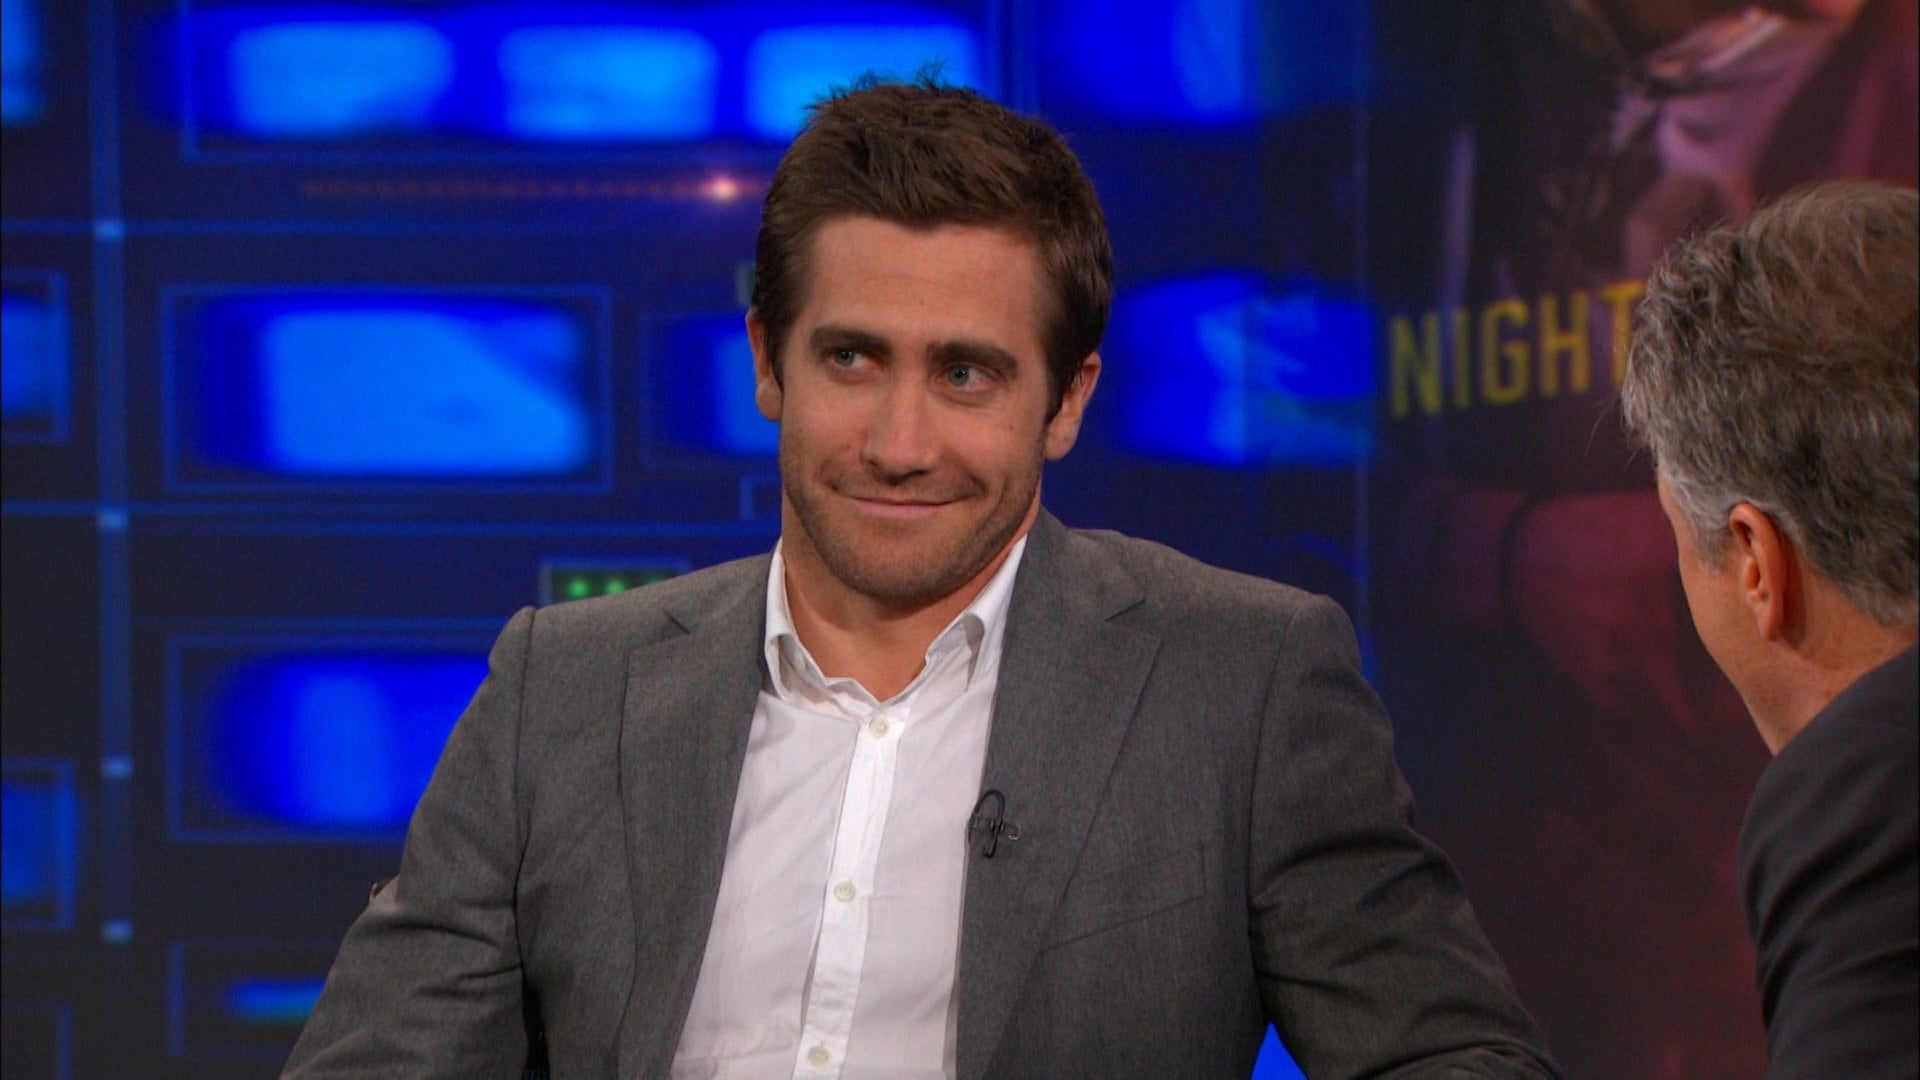 The Daily Show with Trevor Noah - Season 20 Episode 17 : Jake Gyllenhaal (1970)